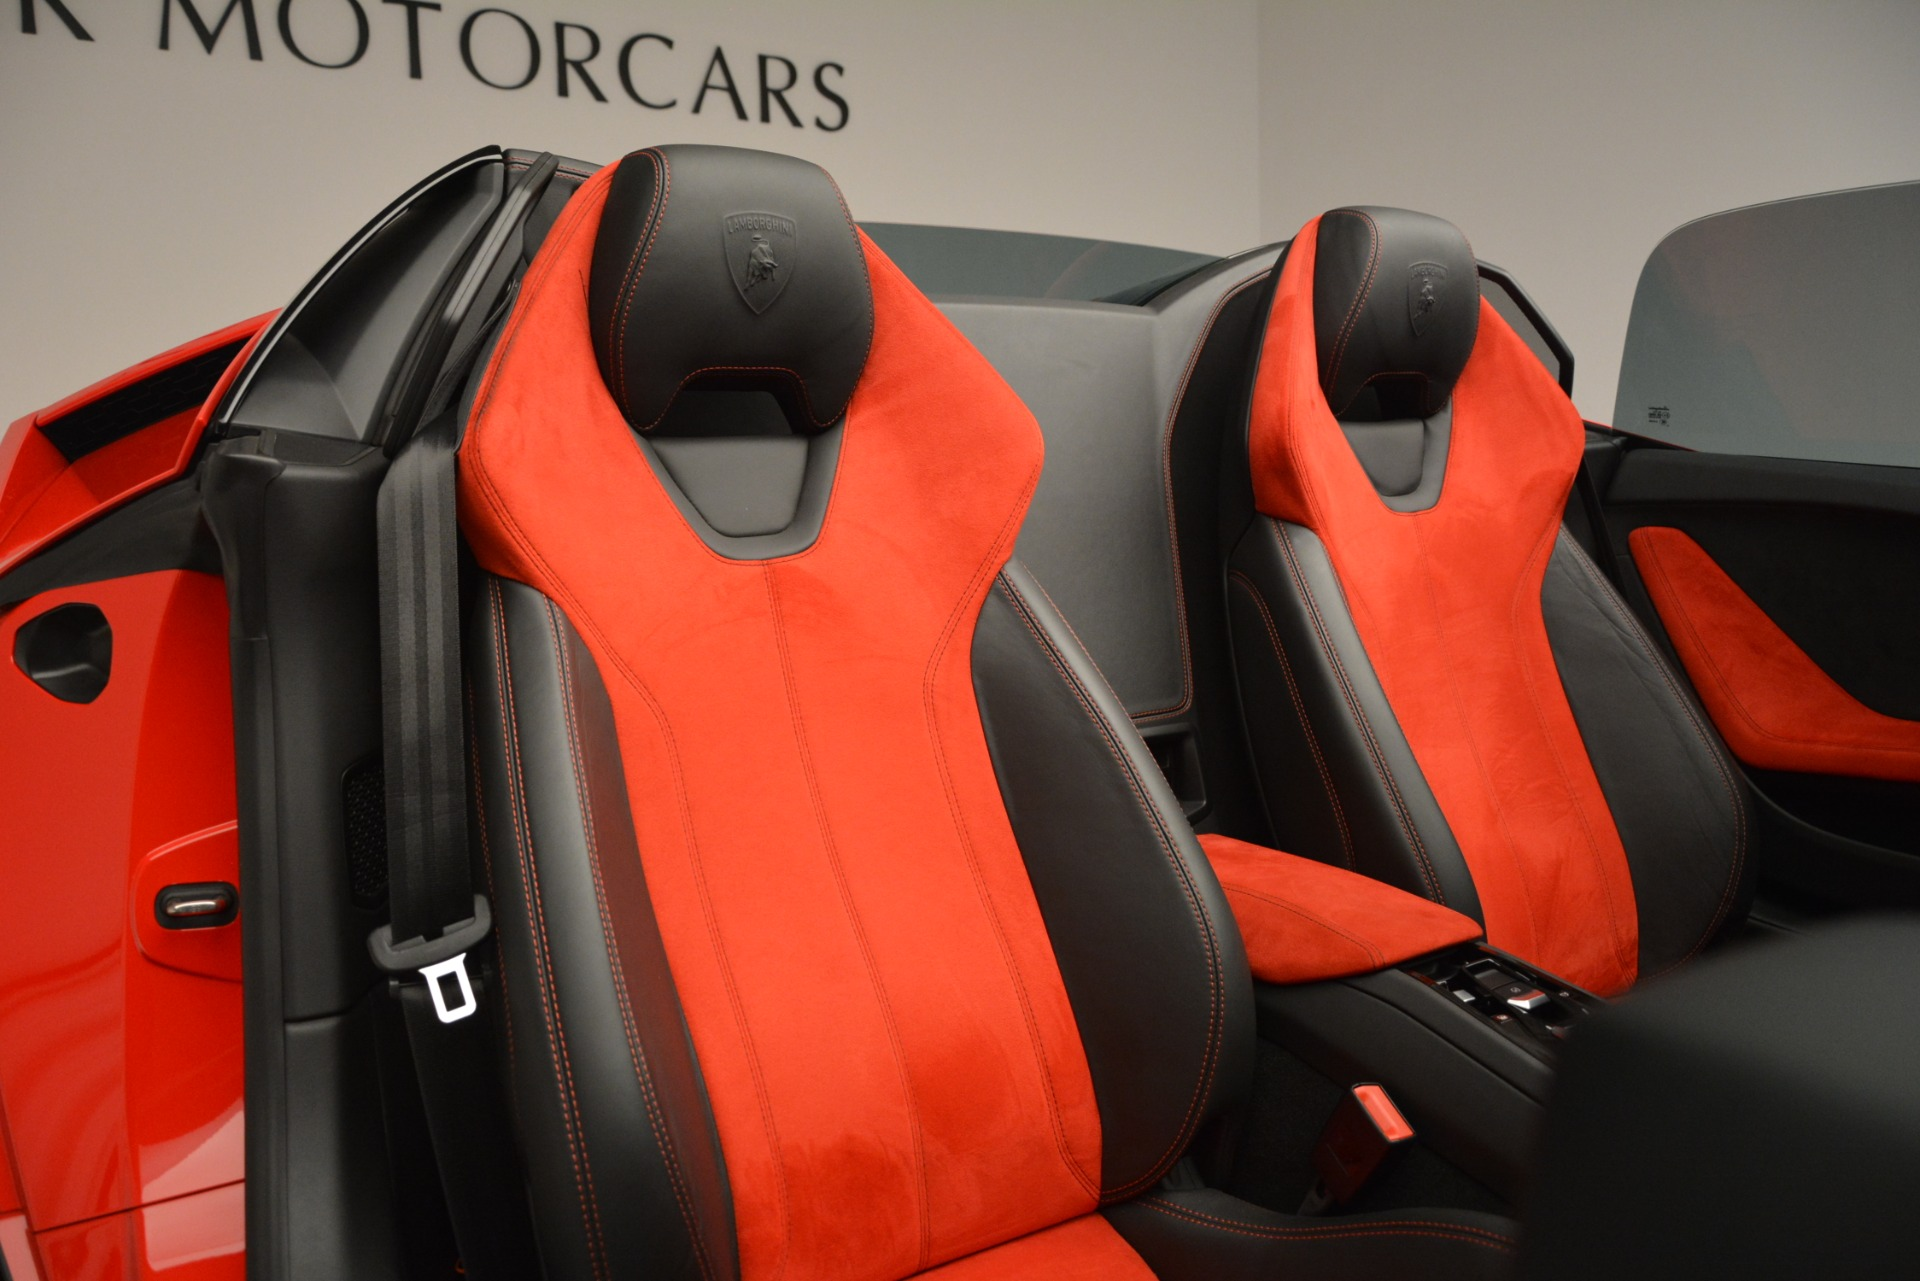 Used 2017 Lamborghini Huracan LP 610-4 Spyder For Sale In Greenwich, CT 3270_p17